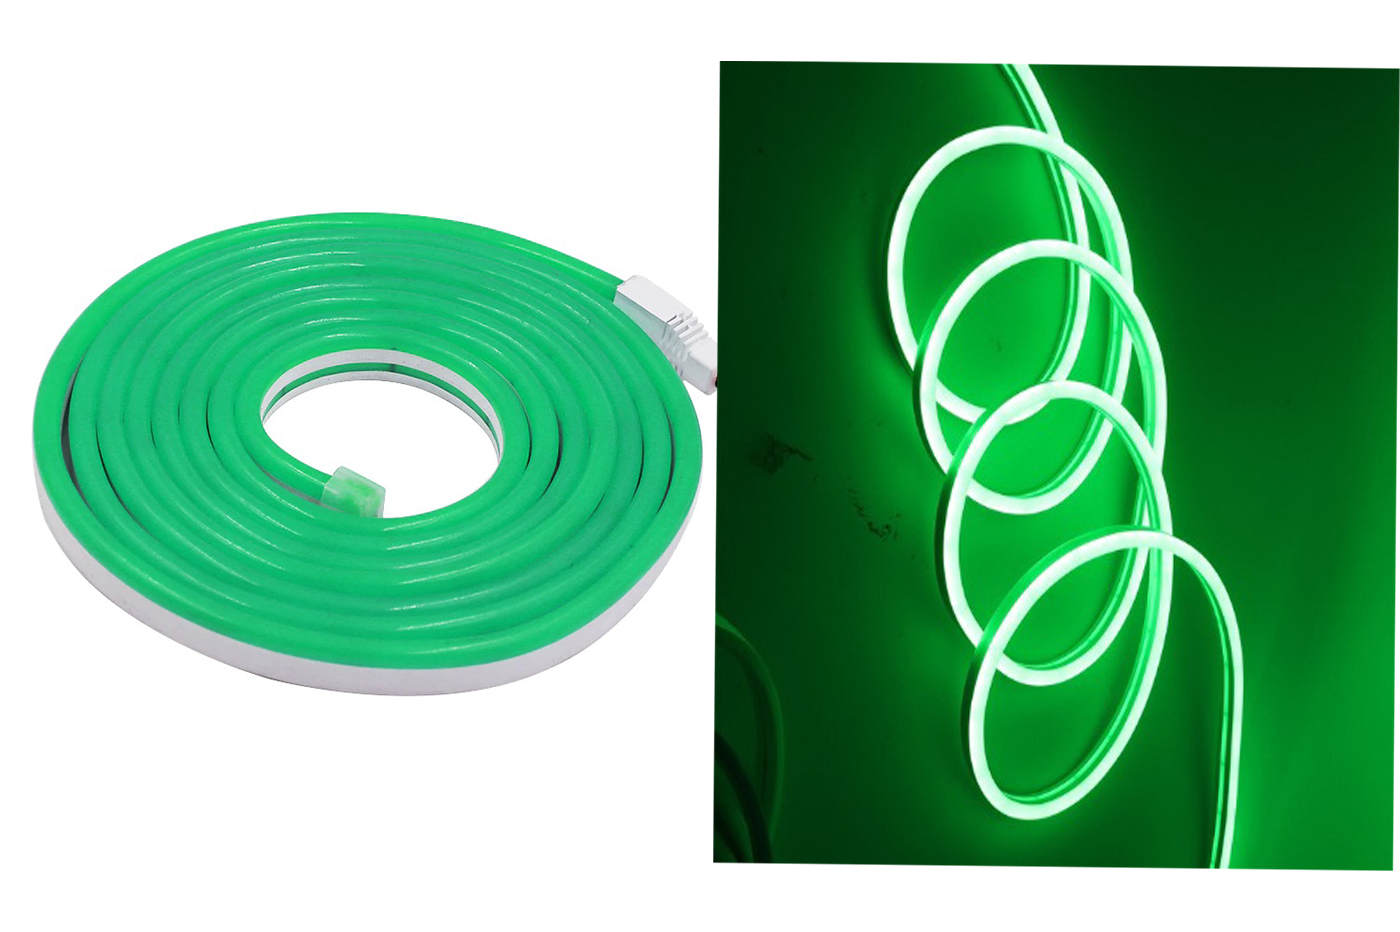 Striscia led neon 5m tubo flessibile luminoso 120led strip led bobina verde